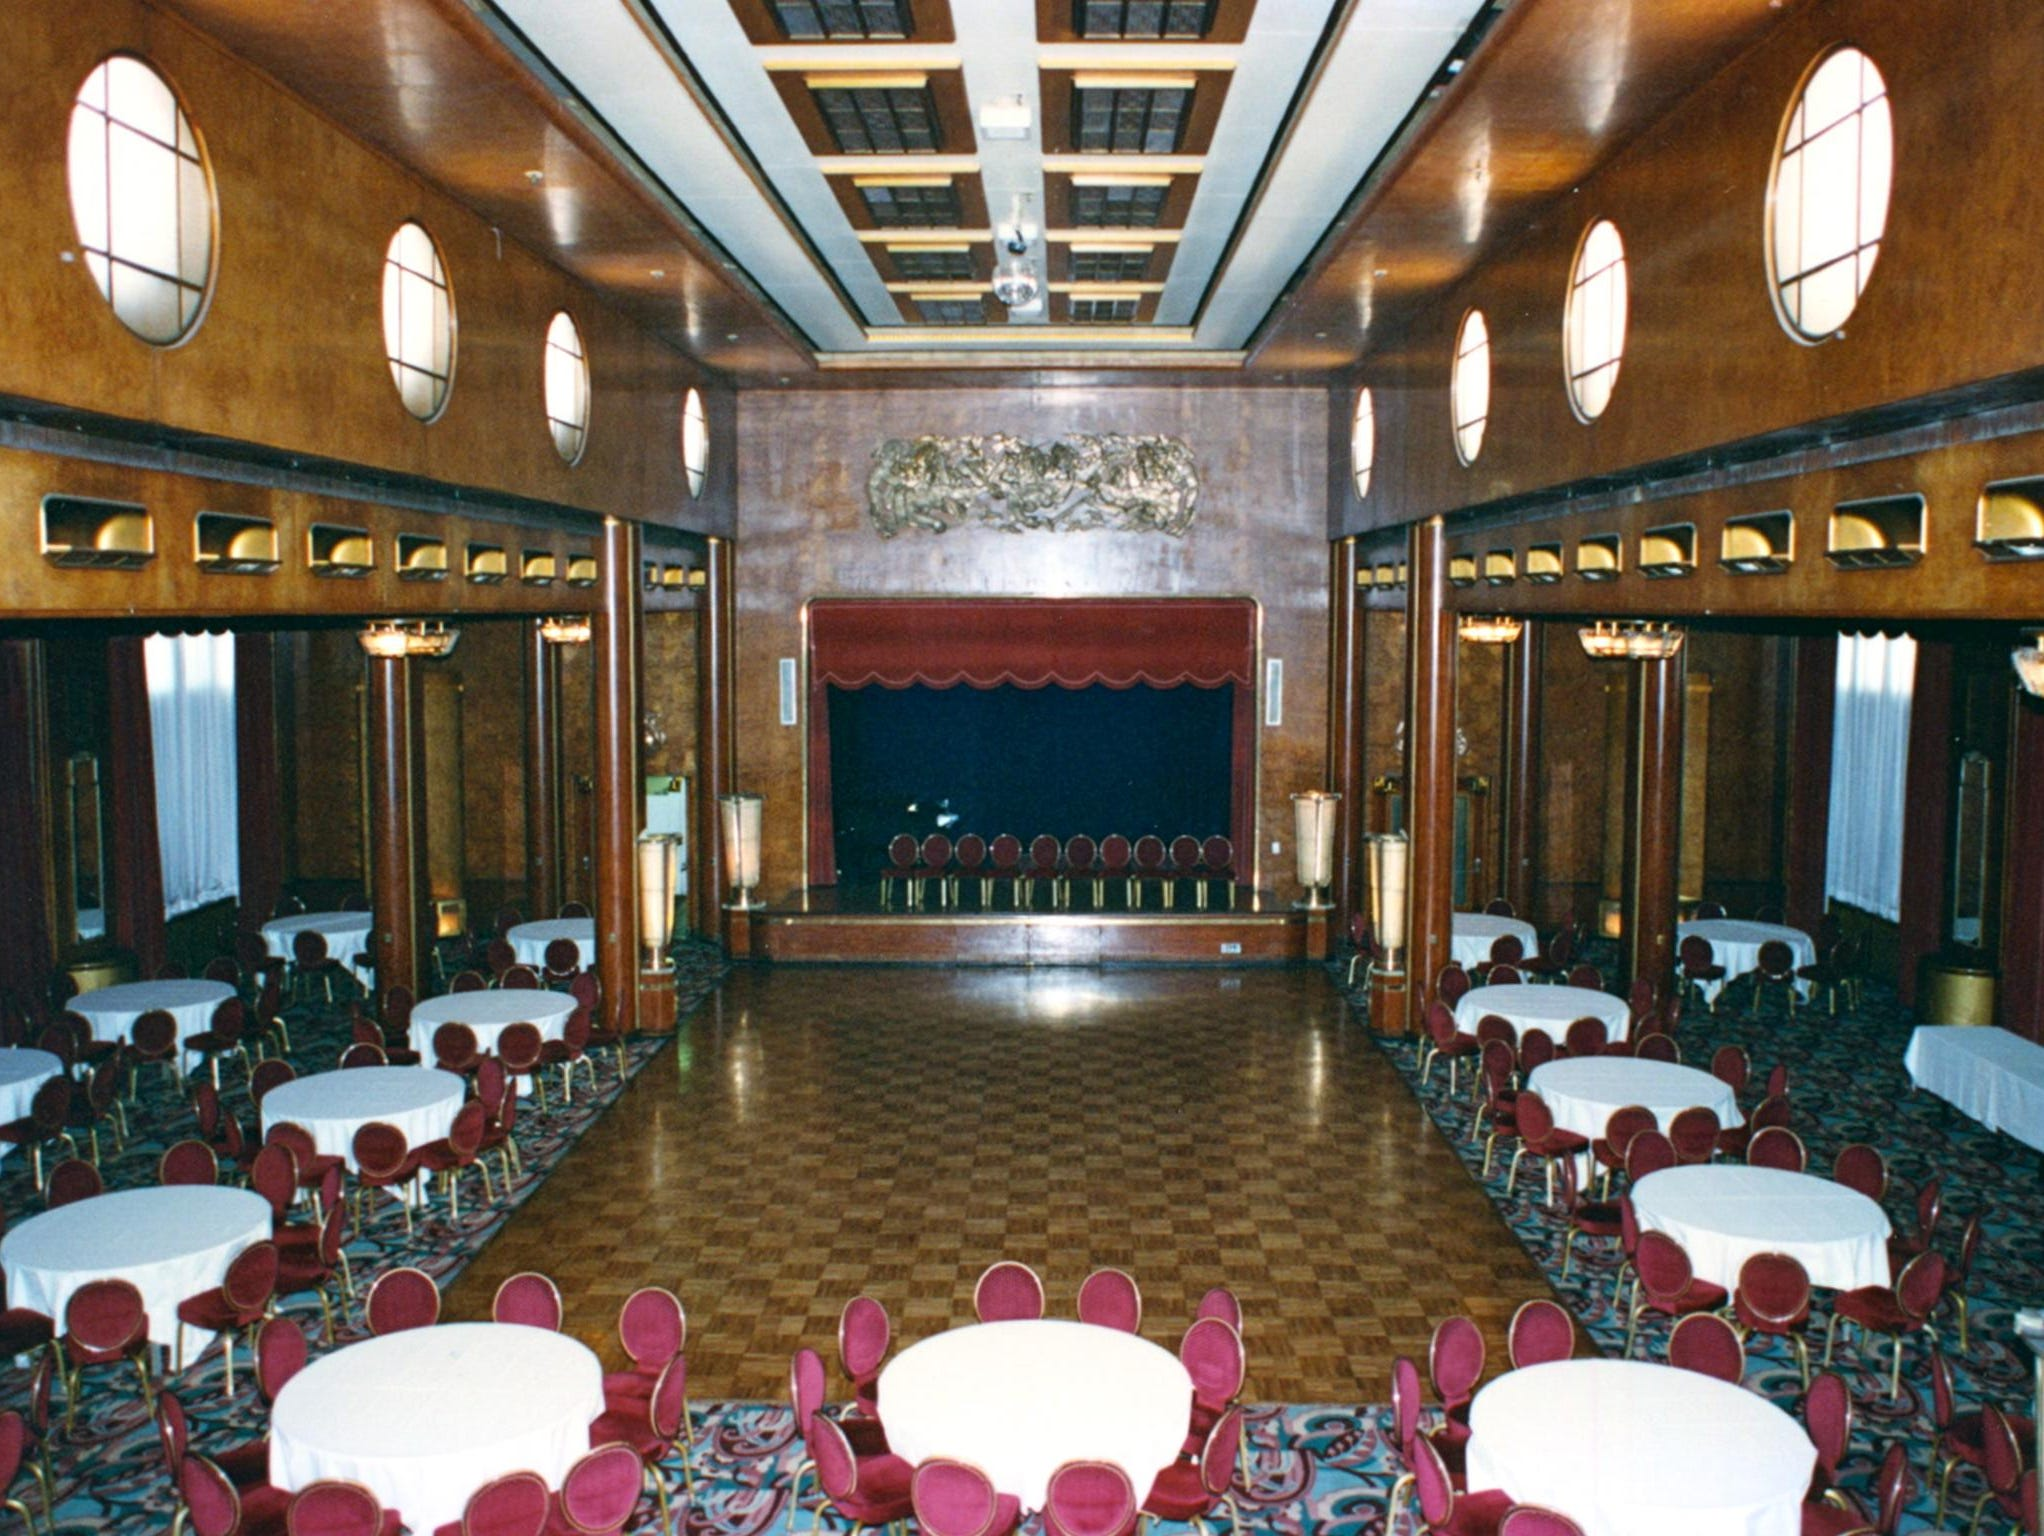 The soaring Queen's Salon is the former first-class lounge. If the 30-foot-high central ceiling looks familiar, that's because it inspired the set that went topsy turvy inThe Poseidon Adventurewhere a number of extras and a Christmas tree plunged into the glass fixtures.